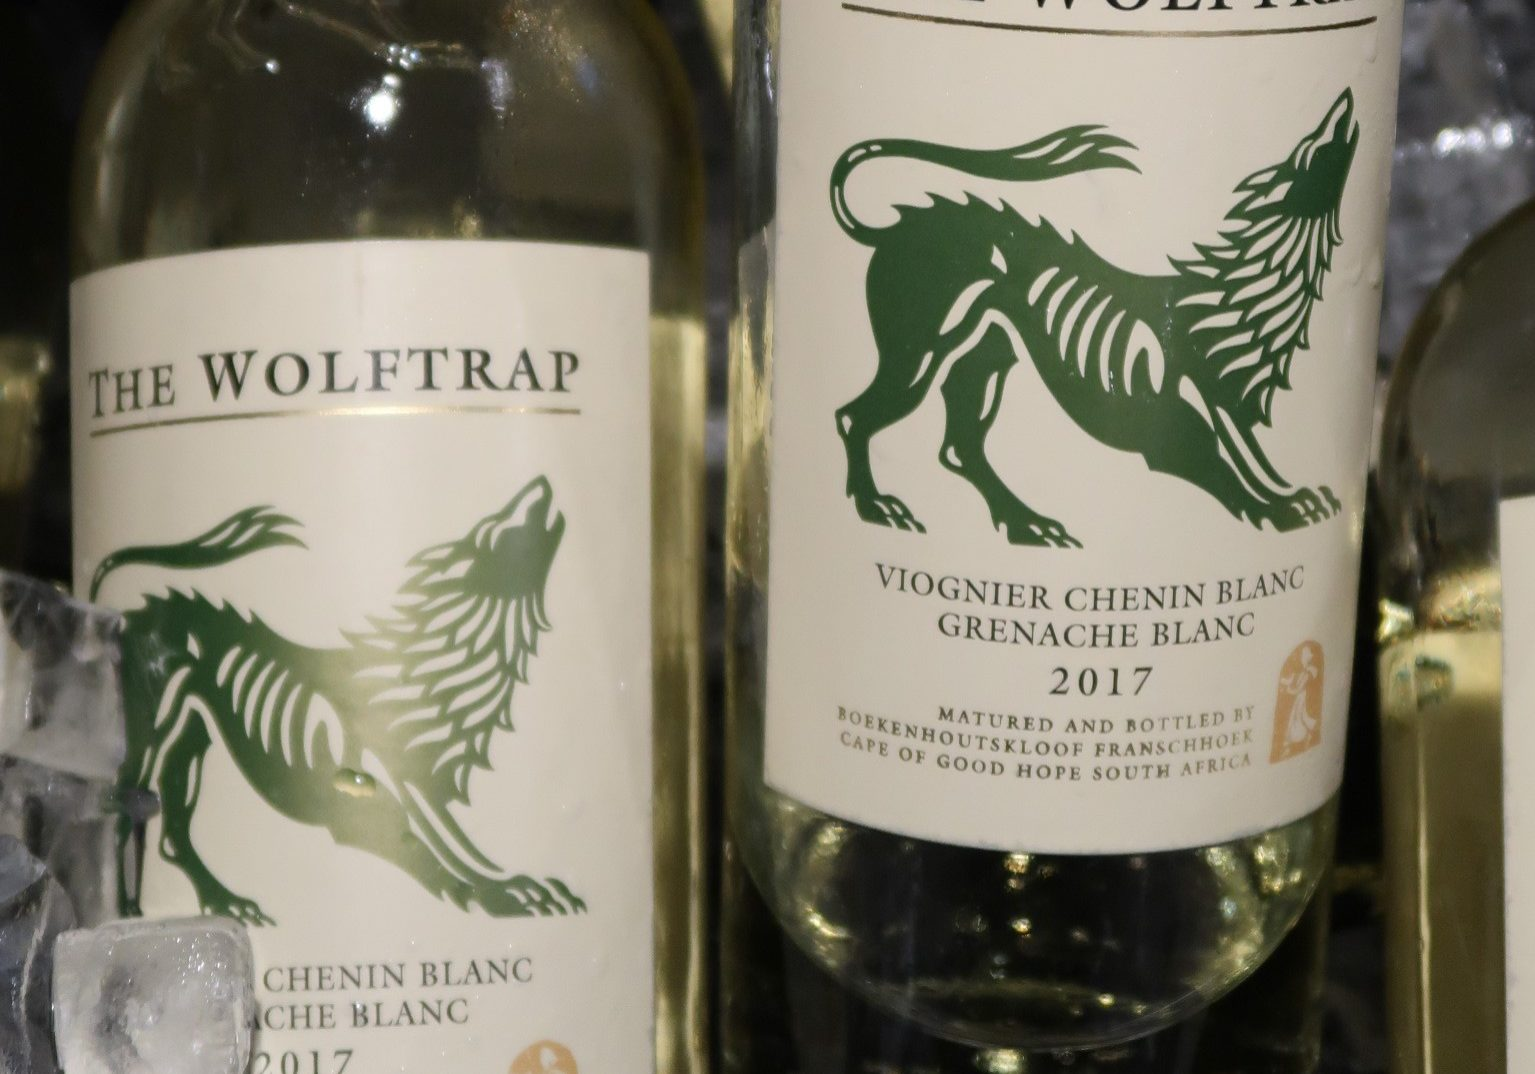 Univins & Spirits The Wolftrap Viognier Chenin Blanc 2017 Burlington Wine Club tasting May 2019